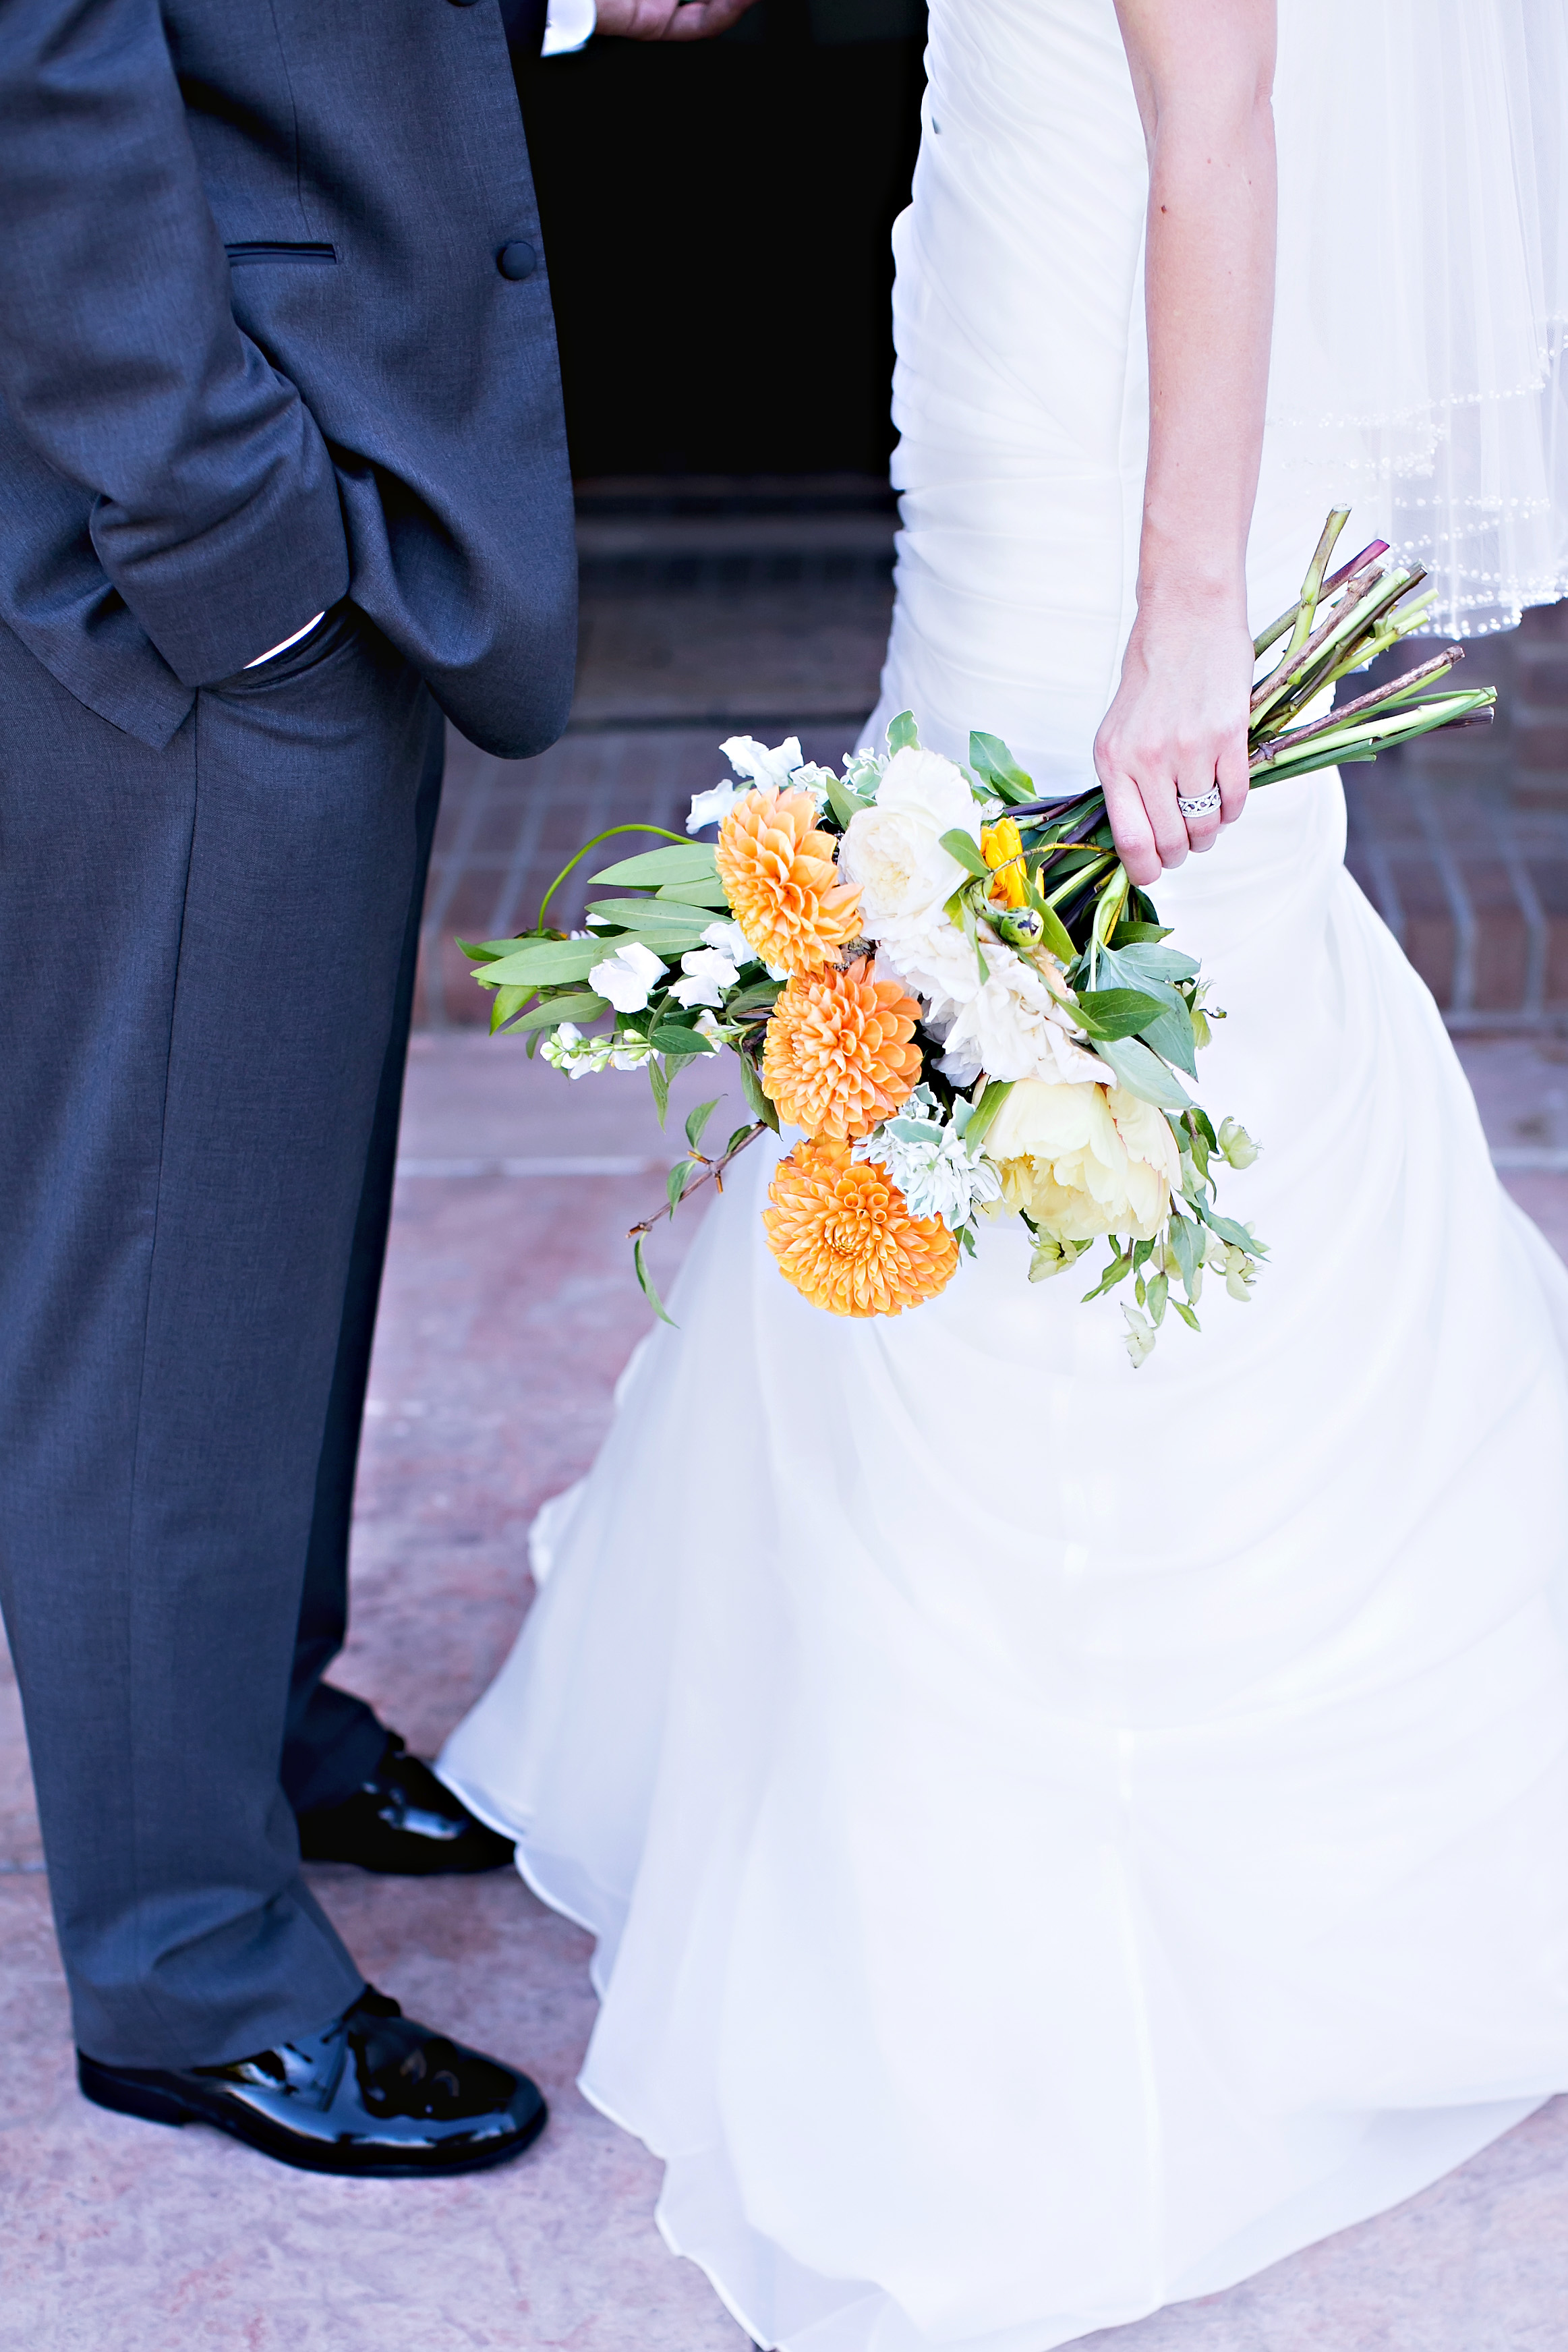 BLOG - Your wedding is coming, and one of those details to sort is the wedding flowers. Where to begin once you pick the hue? How do you land the budget? Here are some tips for finding your perfect wedding flowers for your special day...